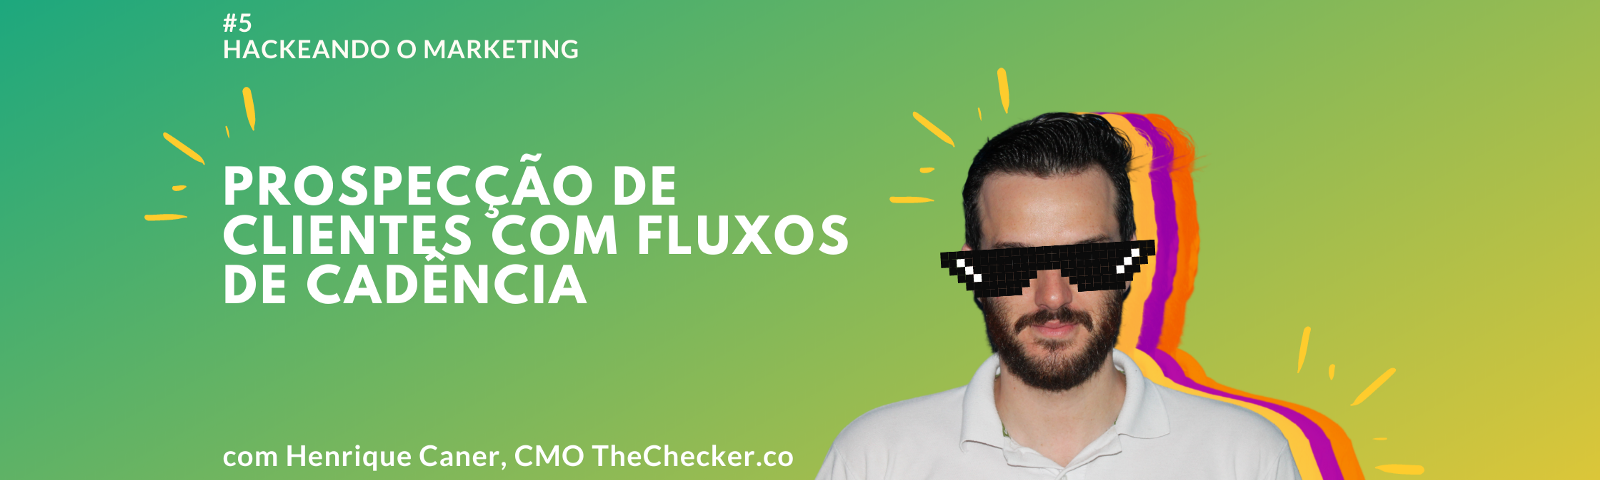 Monuv cadencia-fluxo-hackeando-marketing-henrique-caner-marketing-digital-camila-rissi